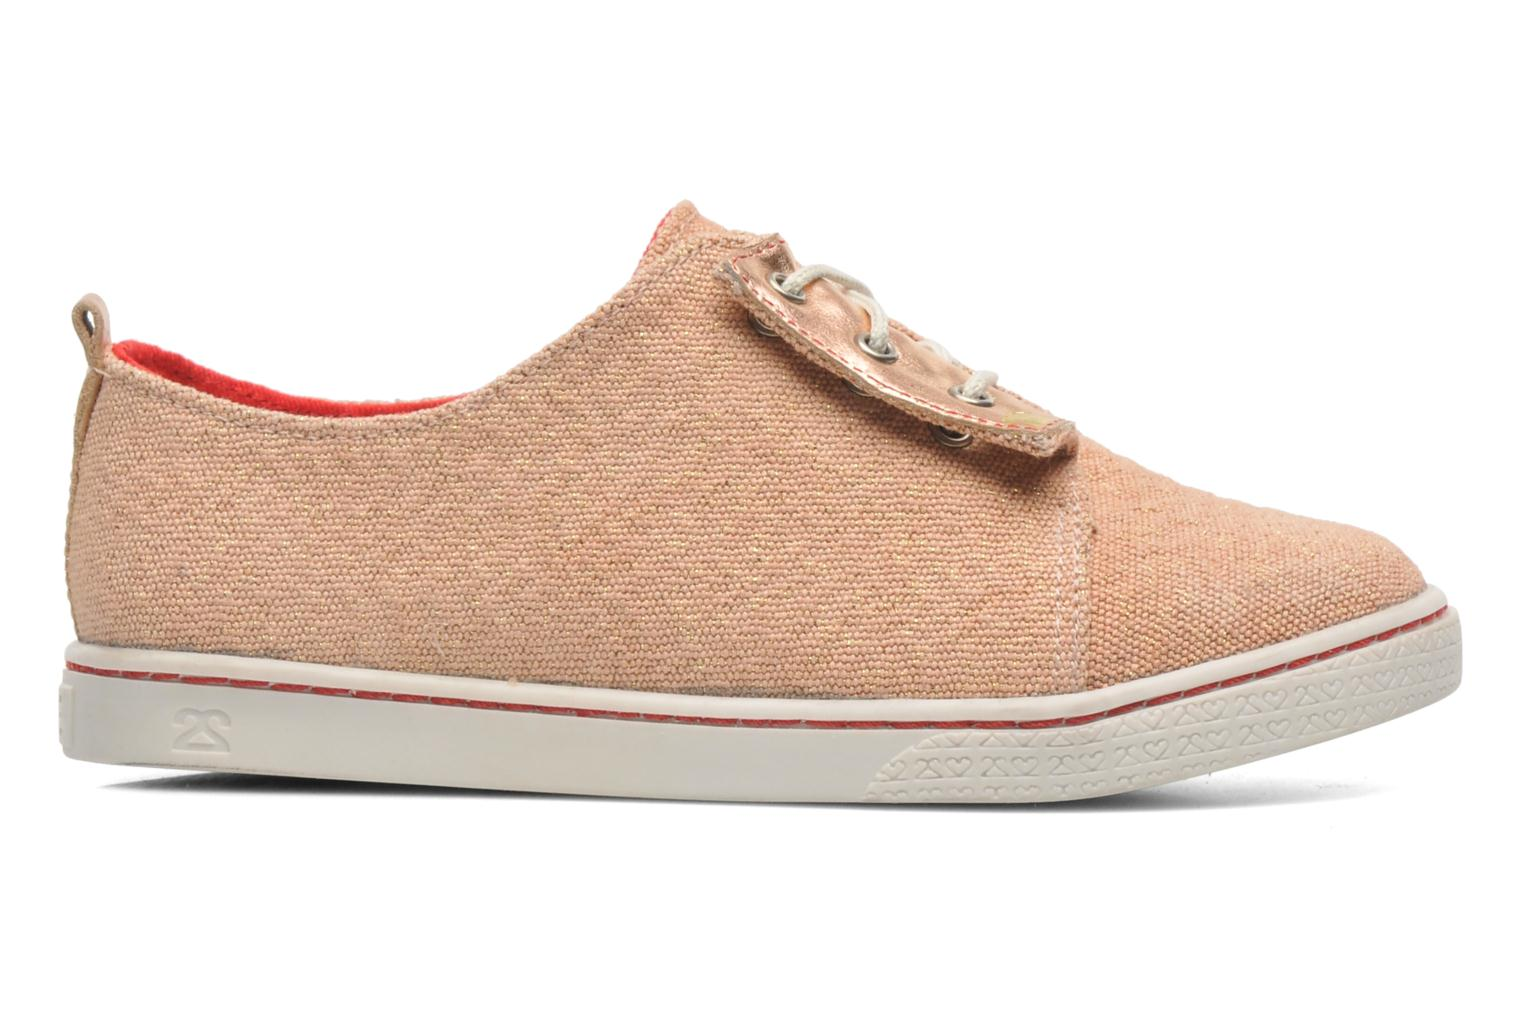 Sneakers 2 Side 2S - SWING Rosa immagine posteriore